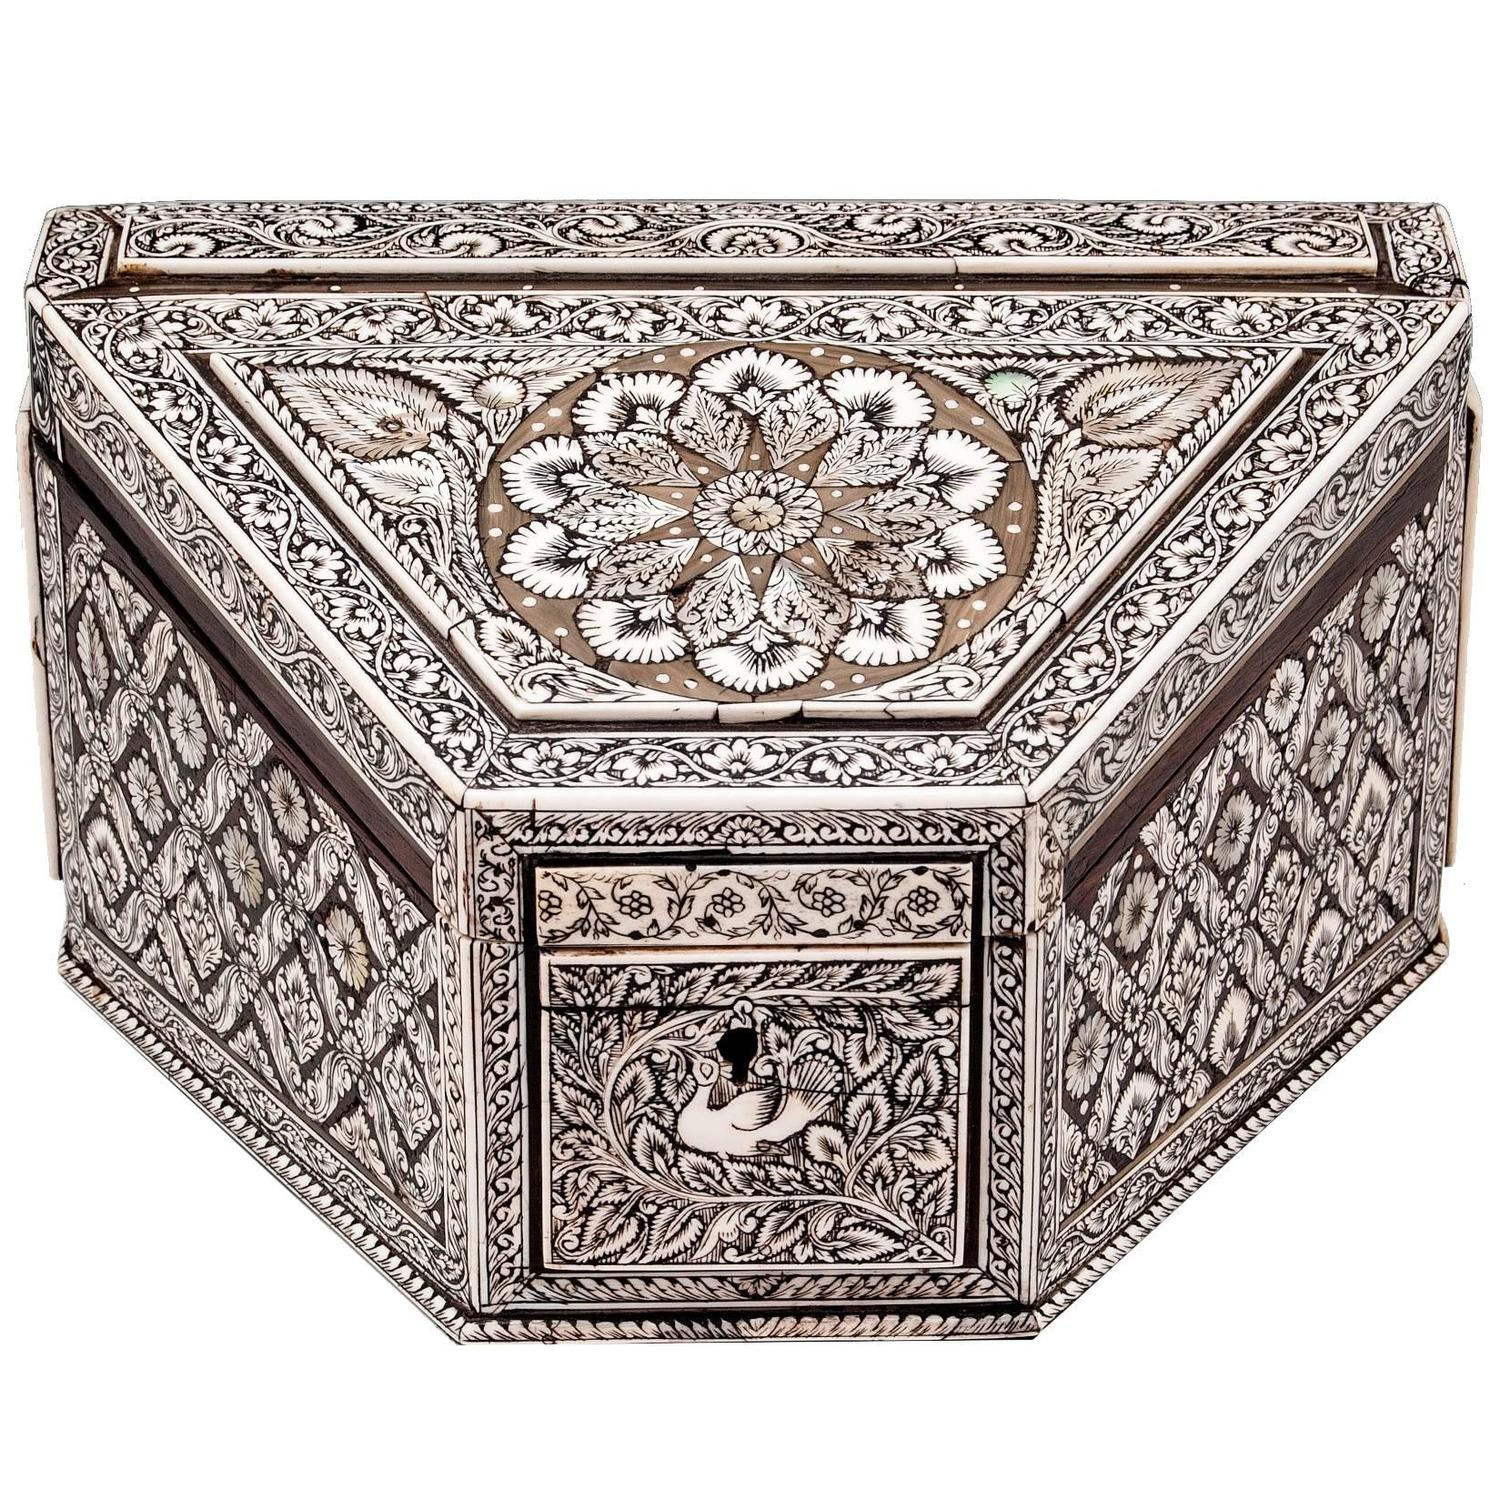 Anglo indian stationery box at stdibs